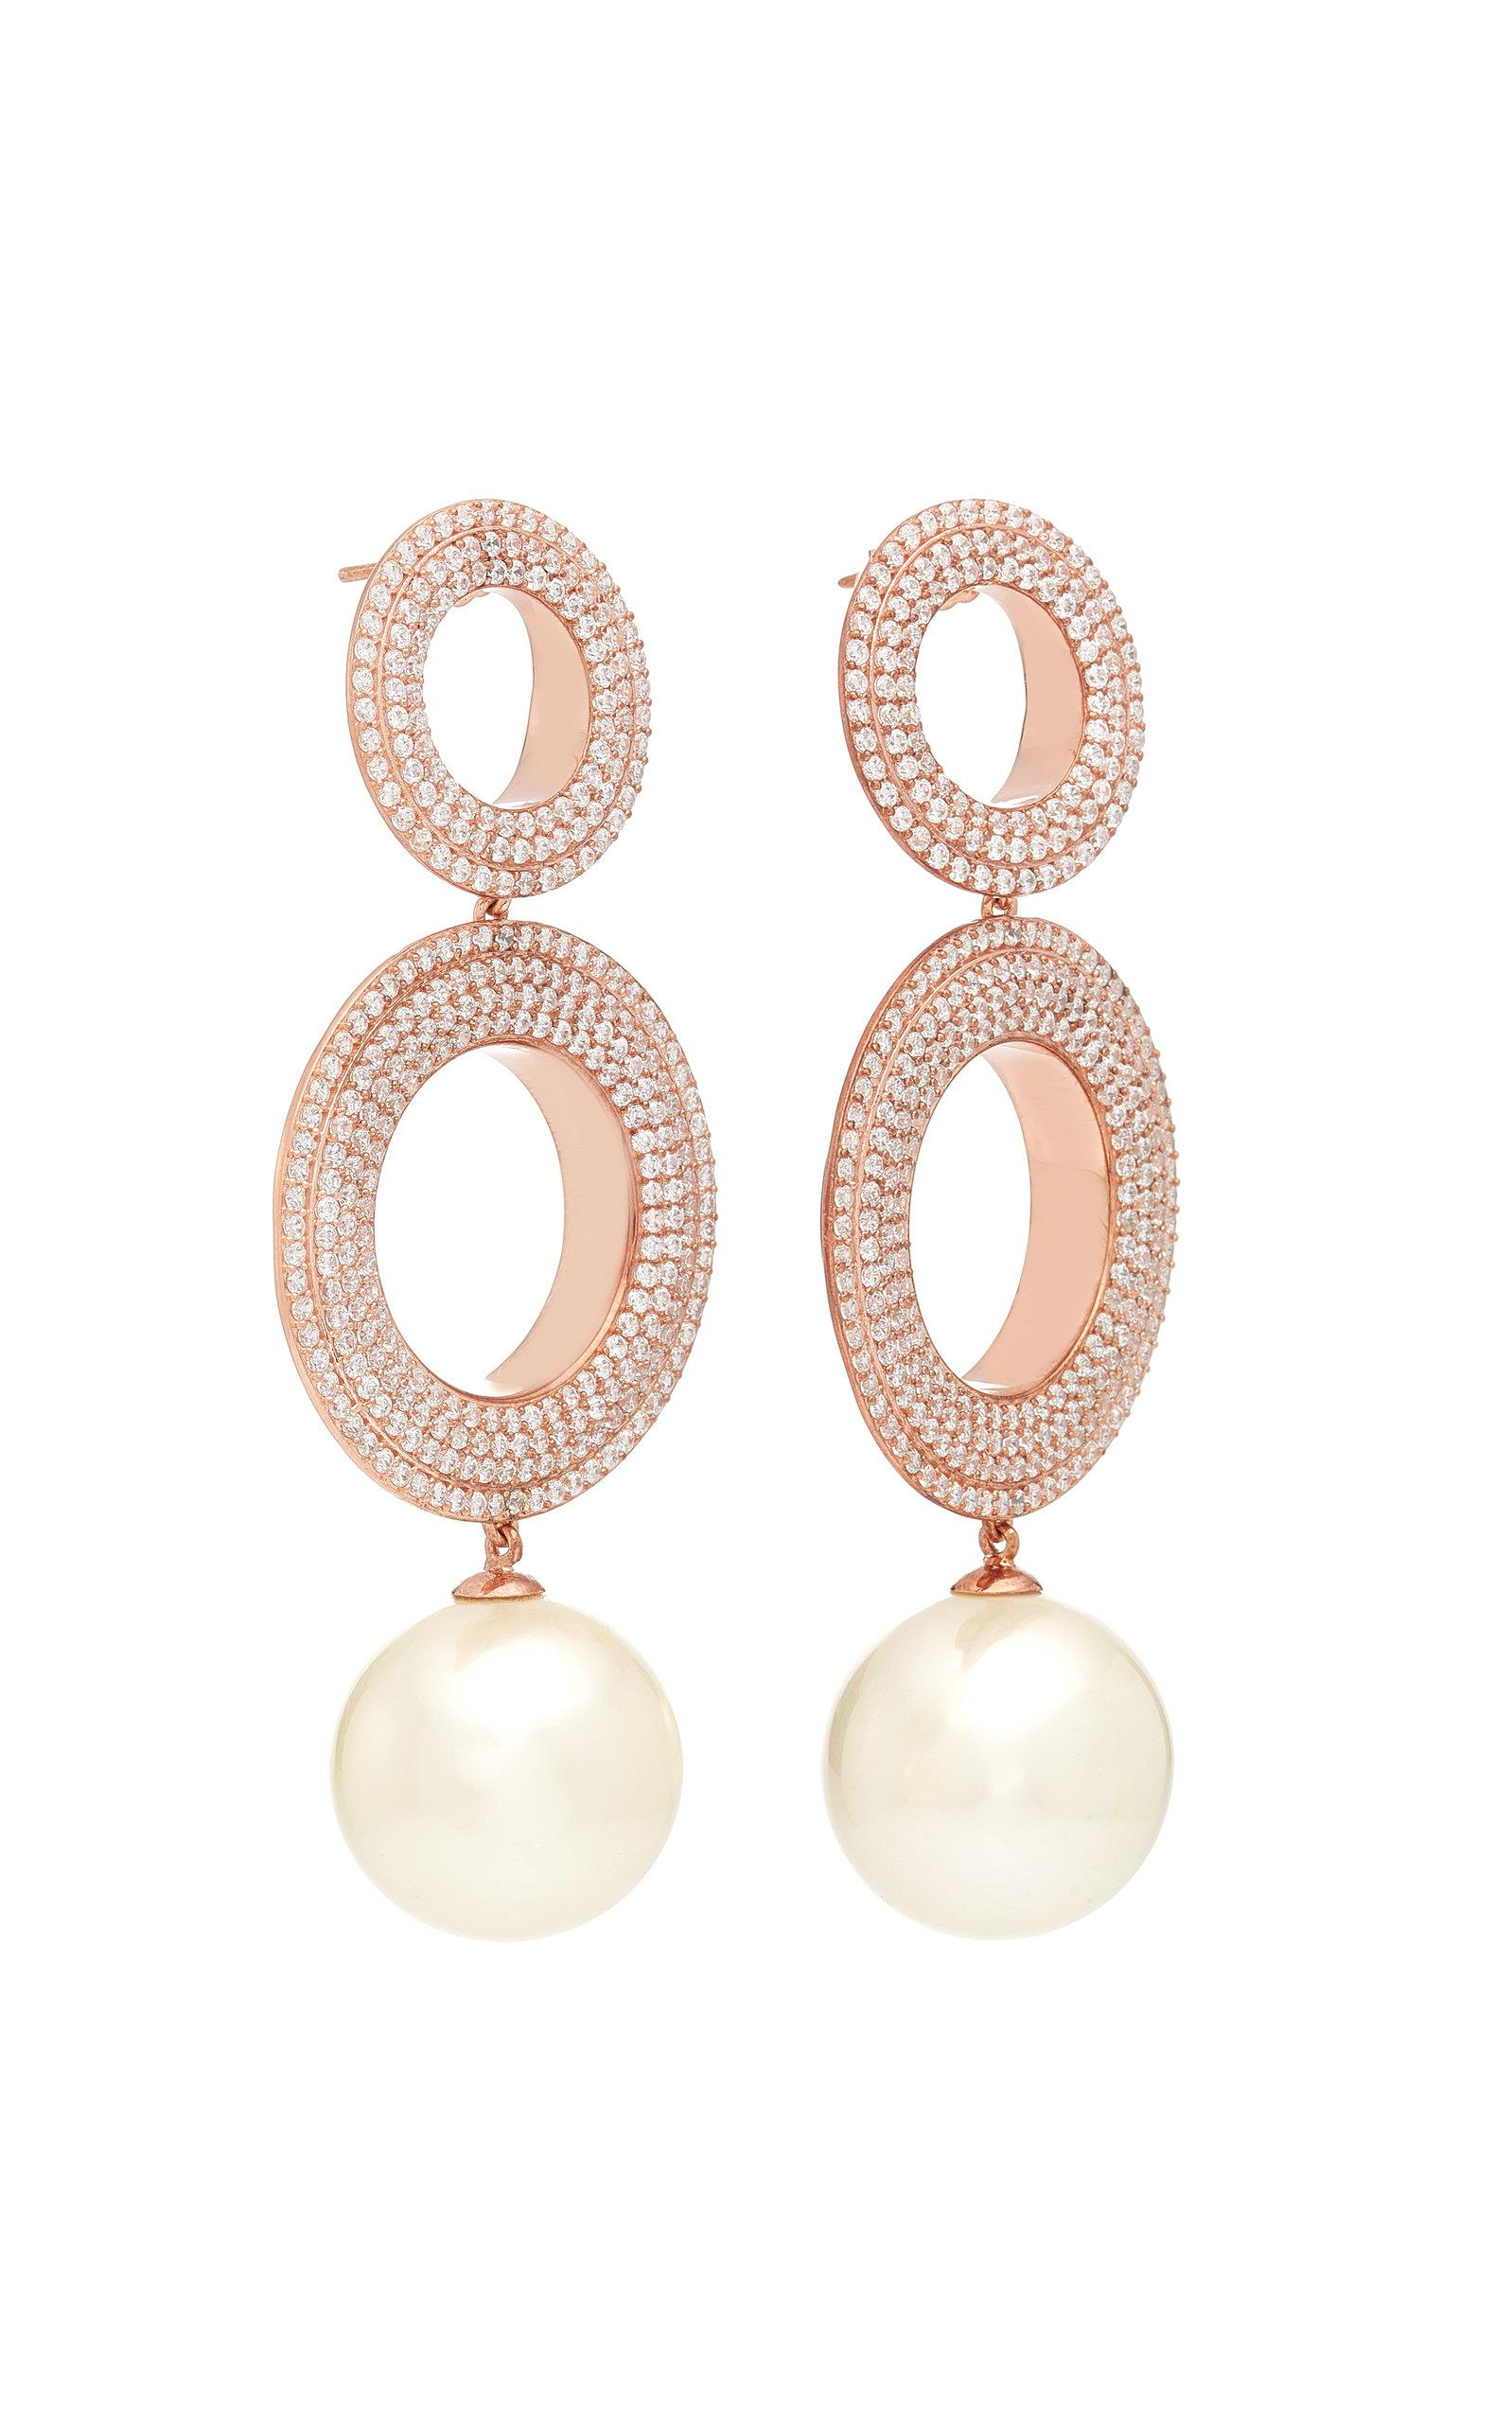 Grommets Gold-Plated Brass Cubic Zirconia and Pearl Earrings Joanna Laura Constantine